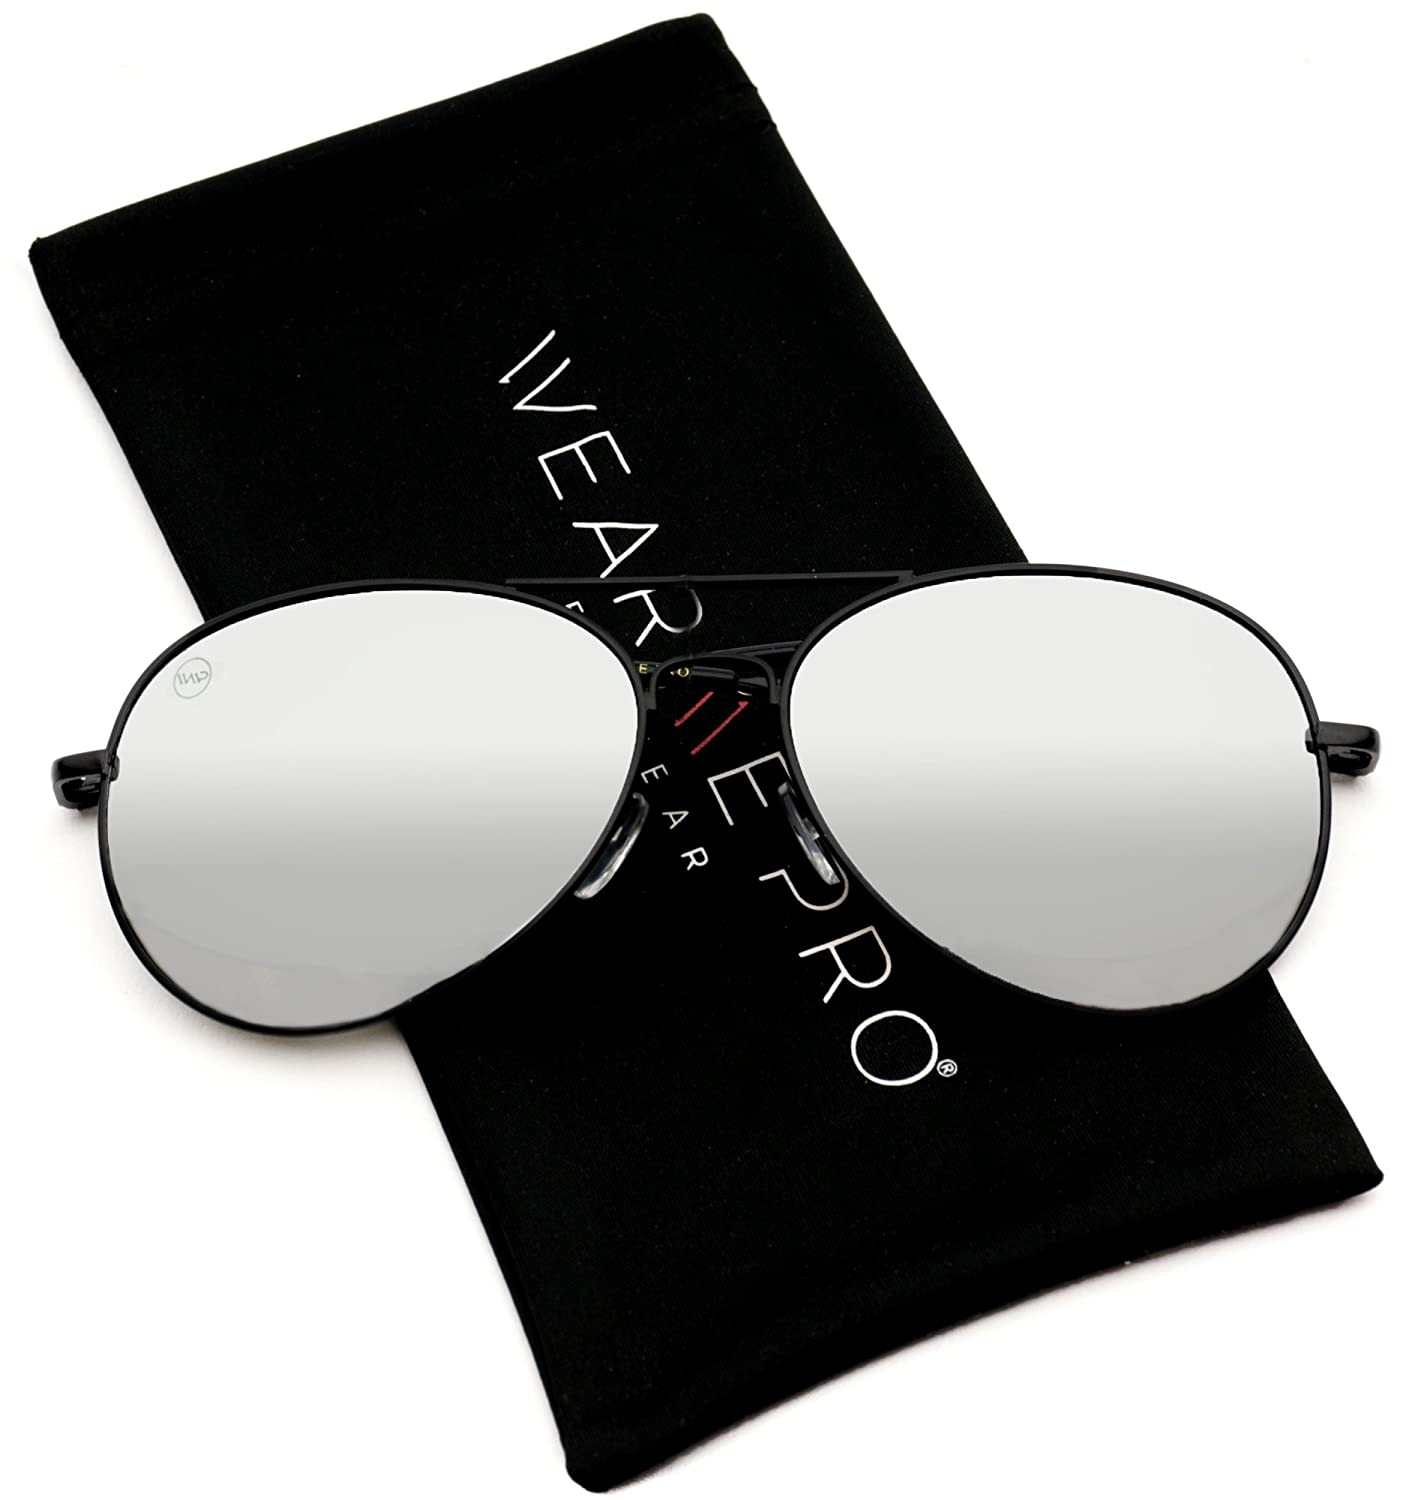 247a1e3ef51 Amazon.com  Aviator Full Silver Mirror Metal Frame Sunglasses (Black Frame Mirror  Silver Lens